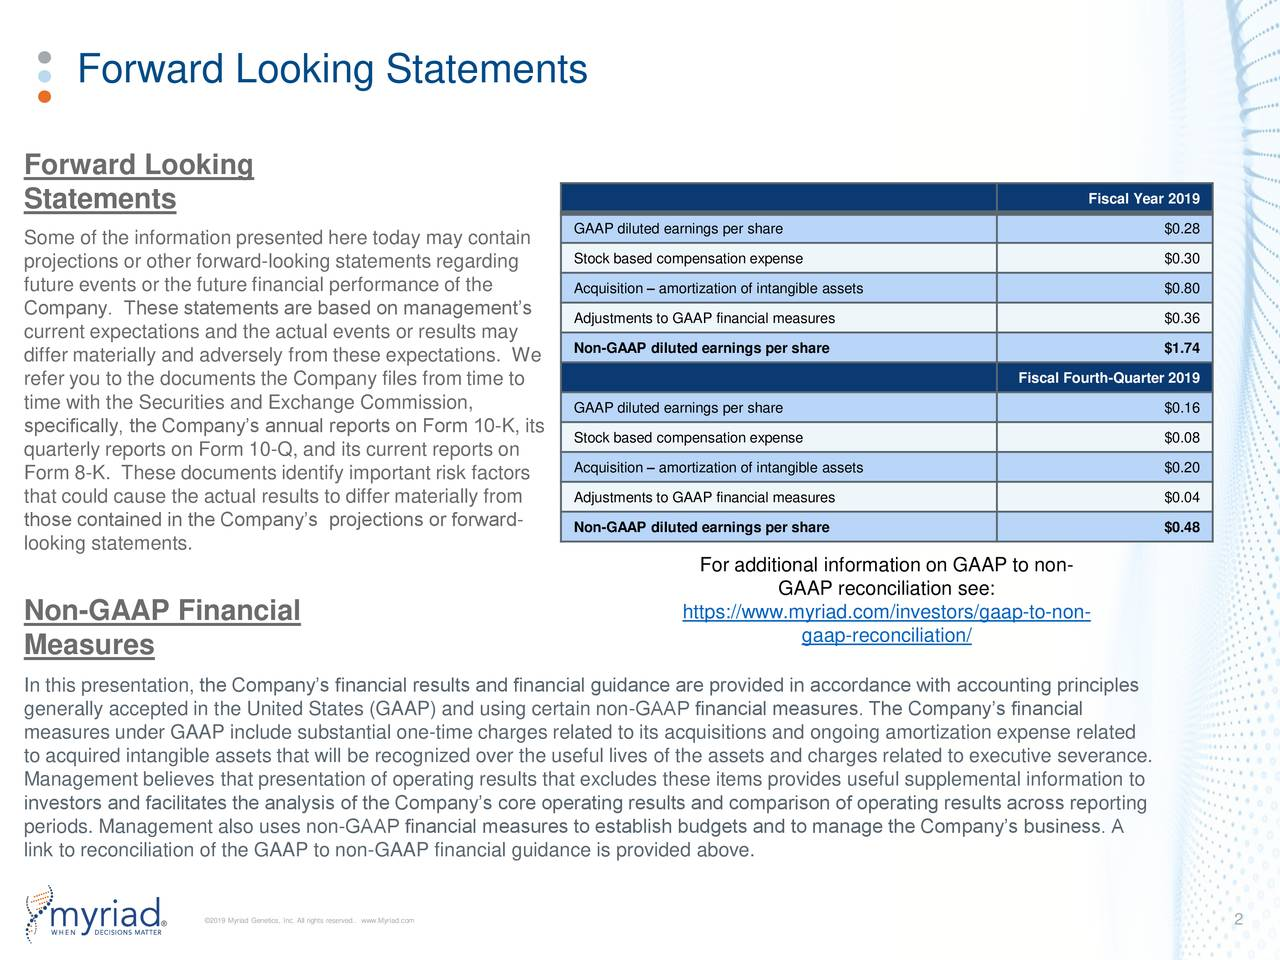 Forward Looking Statements Fiscal Year 2019 Some of the information presented here today may contain GAAP diluted earnings per share $0.28 projections or other forward-looking statements regarding Stock based compensation expense $0.30 future events or the future financial performance of the Acquisition – amortization of intangible assets $0.80 Company. These statements are based on management's Adjustments to GAAP financial measures $0.36 current expectations and the actual events or results may Non-GAAP diluted earnings per share $1.74 differ materially and adversely from these expectations. We refer you to the documents the Company files from time to Fiscal Fourth-Quarter 2019 time with the Securities and Exchange Commission, GAAP diluted earnings per share $0.16 specifically, the Company's annual reports on Form 10-K, its Stock based compensation expense $0.08 quarterly reports on Form 10-Q, and its current reports on Form 8-K. These documents identify important risk factors Acquisition – amortization of intangible assets $0.20 that could cause the actual results to differ materially from Adjustments to GAAP financial measures $0.04 those contained in the Company's projections or forward- Non-GAAP diluted earnings per share $0.48 looking statements. For additional information on GAAP to non- GAAP reconciliation see: Non-GAAP Financial https://www.myriad.com/investors/gaap-to-non- gaap-reconciliation/ Measures In this presentation, the Company's financial results and financial guidance are provided in accordance with accounting principles generally accepted in the United States (GAAP) and using certain non-GAAP financial measures. The Company's financial measures under GAAP include substantial one-time charges related to its acquisitions and ongoing amortization expense related to acquired intangible assets that will be recognized over the useful lives of the assets and charges related to executive severance. Management believes that presentation of operating res